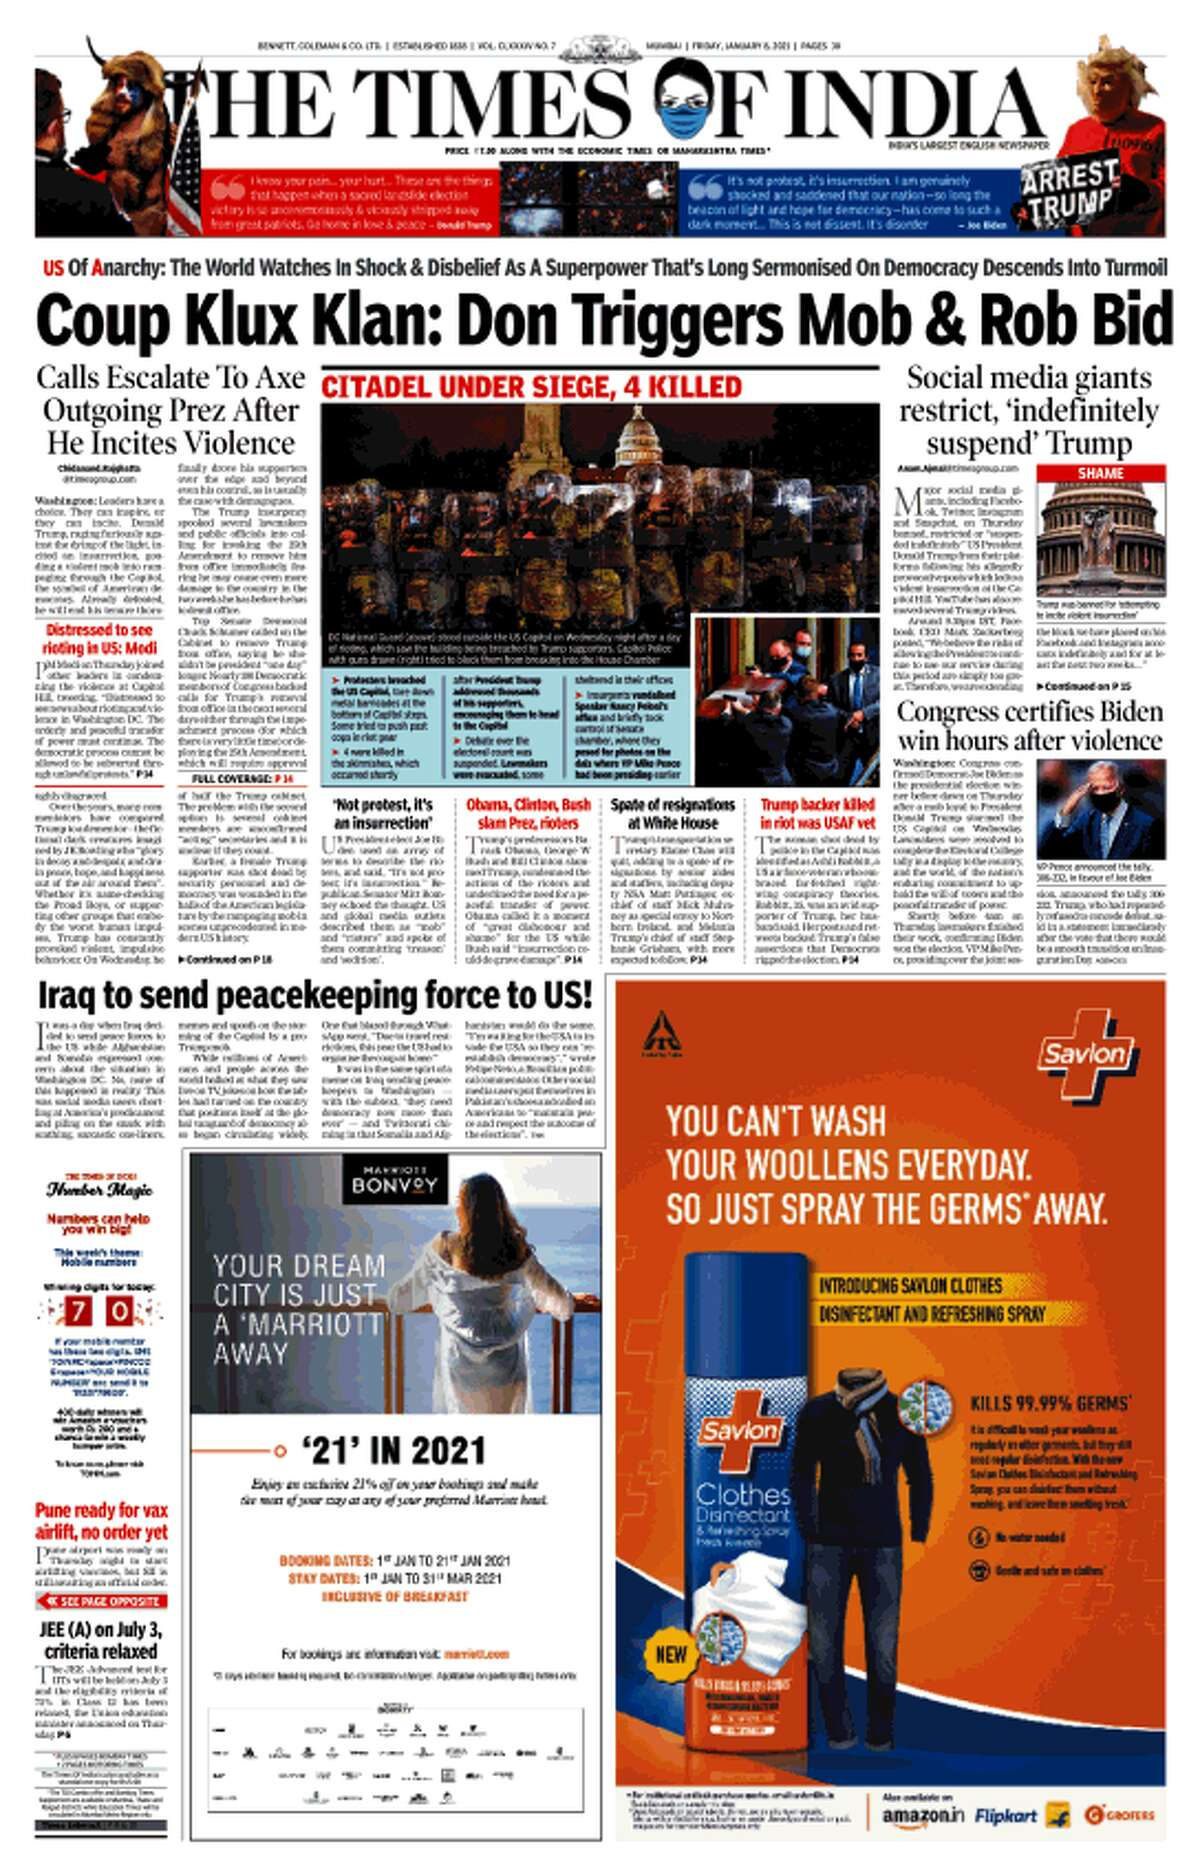 The Jan. 8 front page of The Times of India in New Delhi, India.